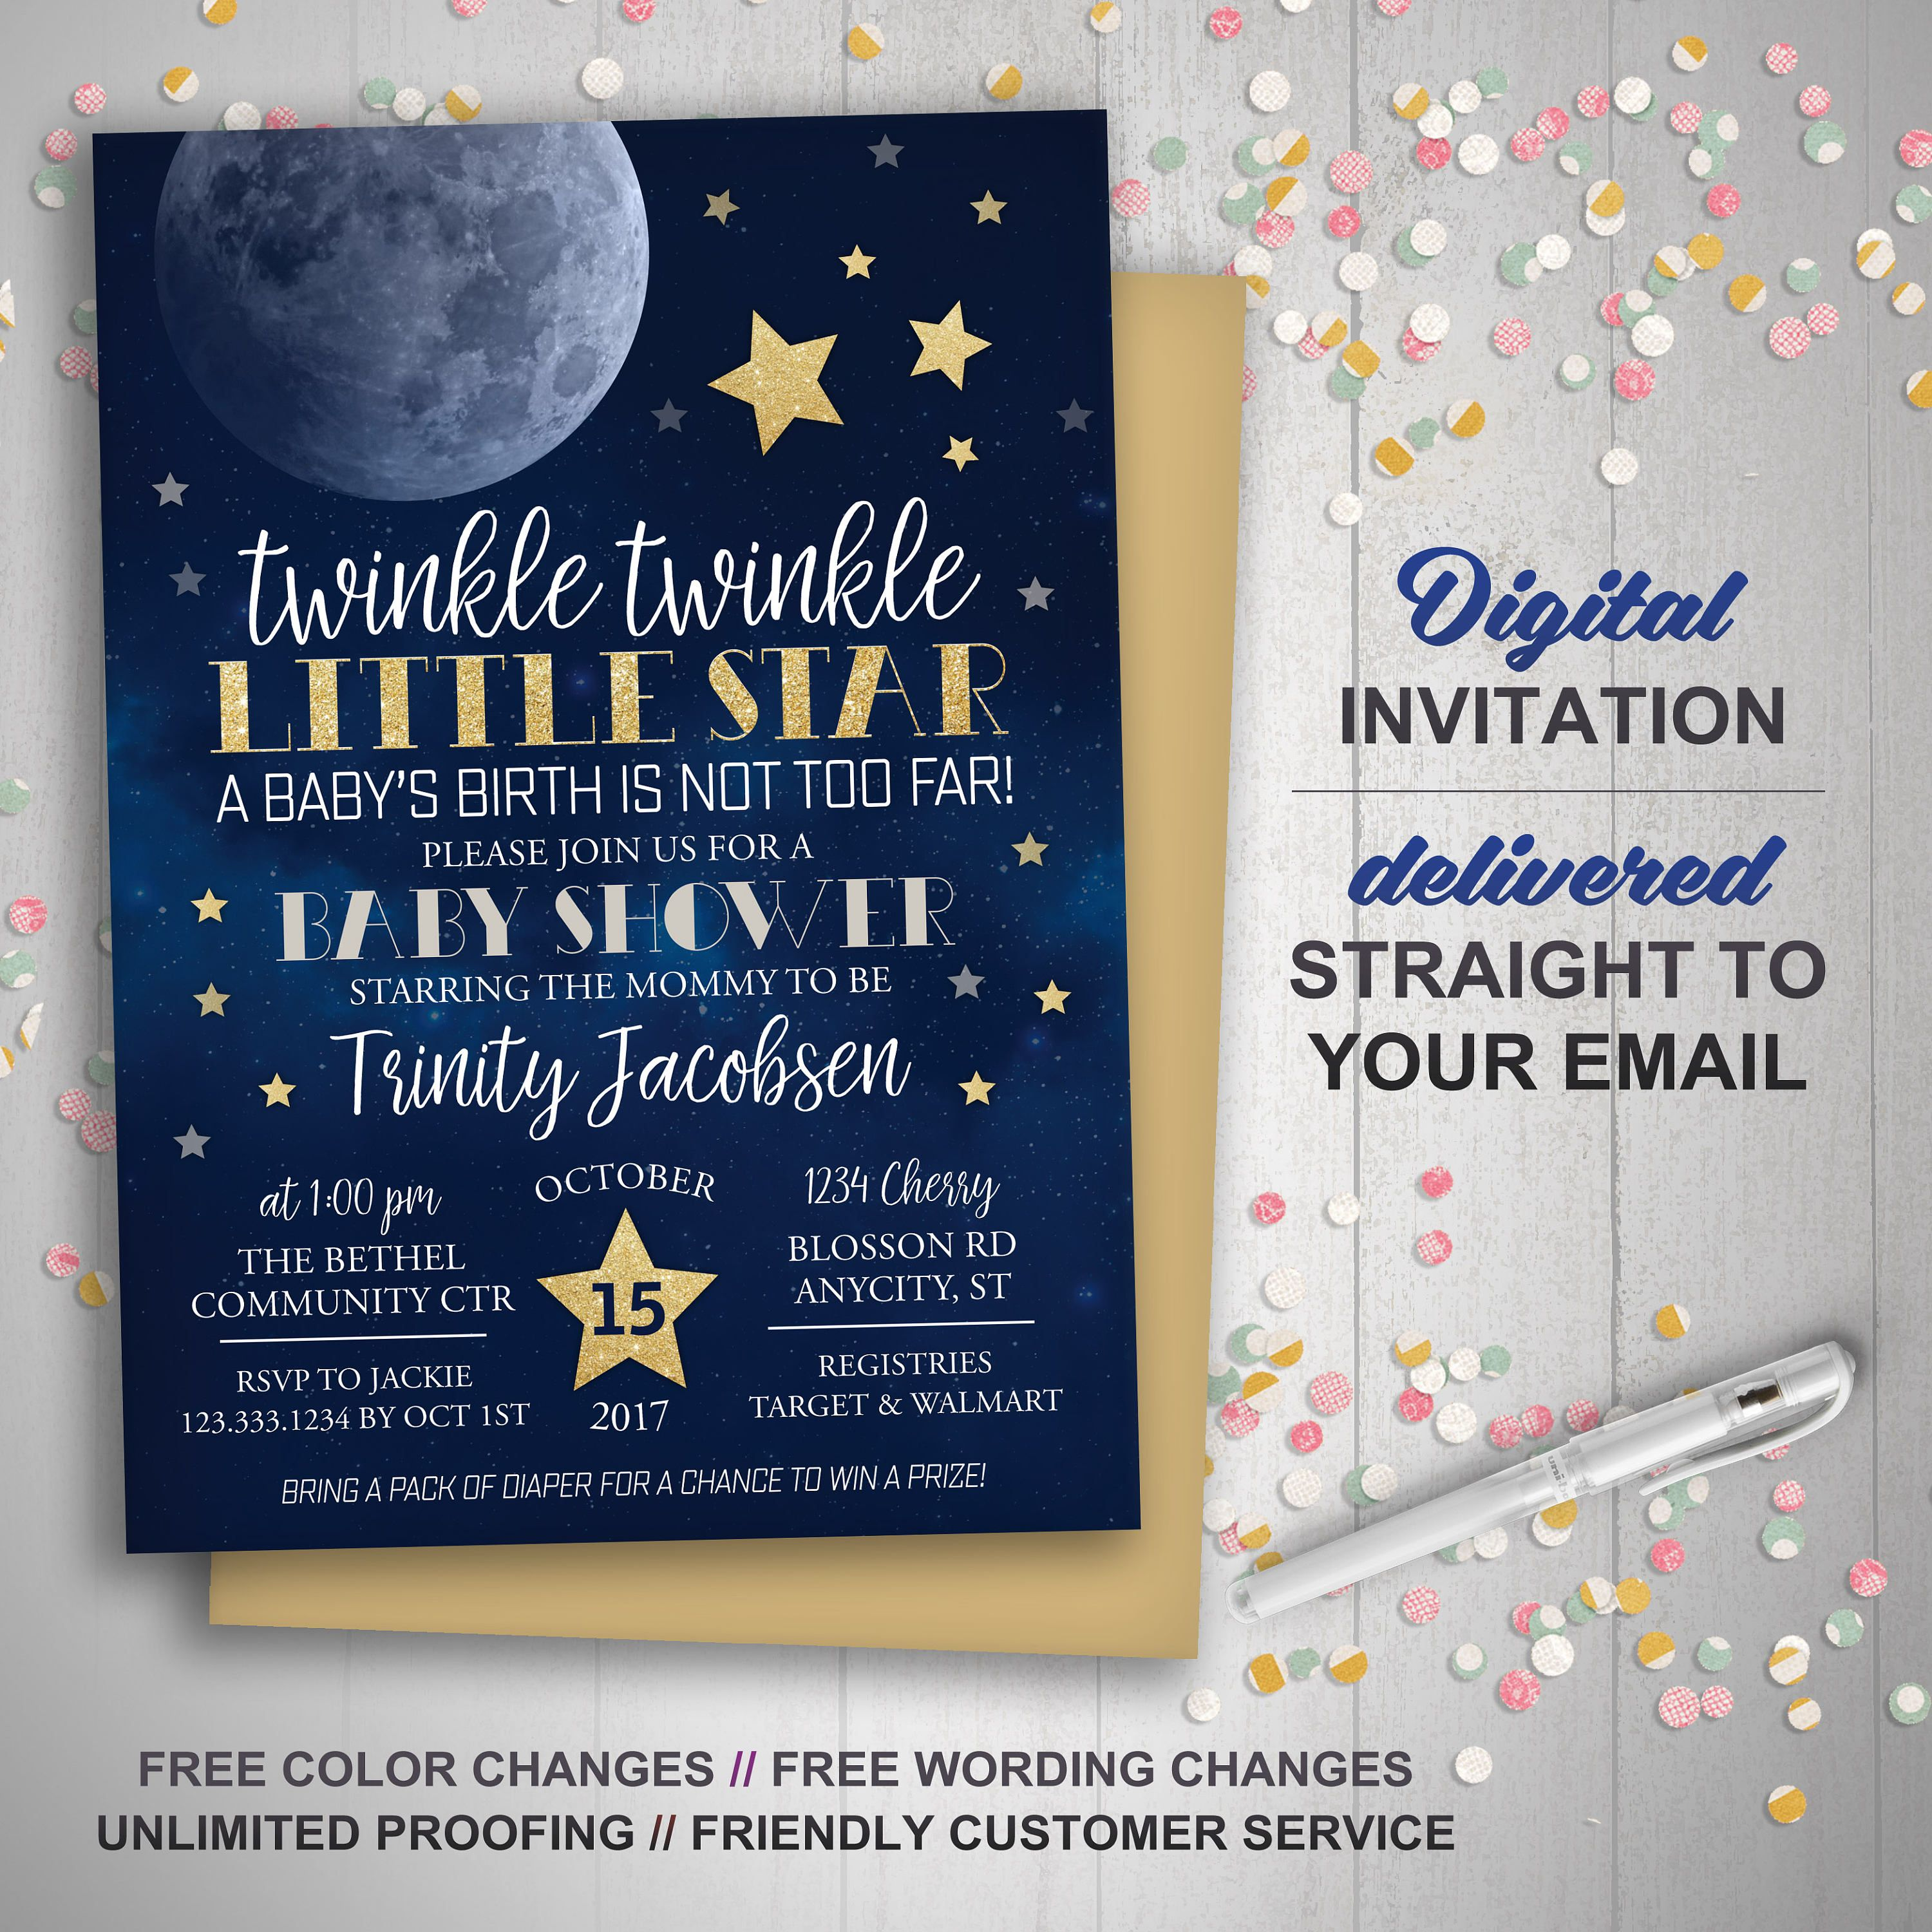 Moon Stars Baby Shower Invitation Twinkle Twinkle Little Star First Birthday Printable Invitation Over The Moon Little Moon Galaxy Star Baby Shower Invitations Star Baby Showers Moon Stars Baby Shower